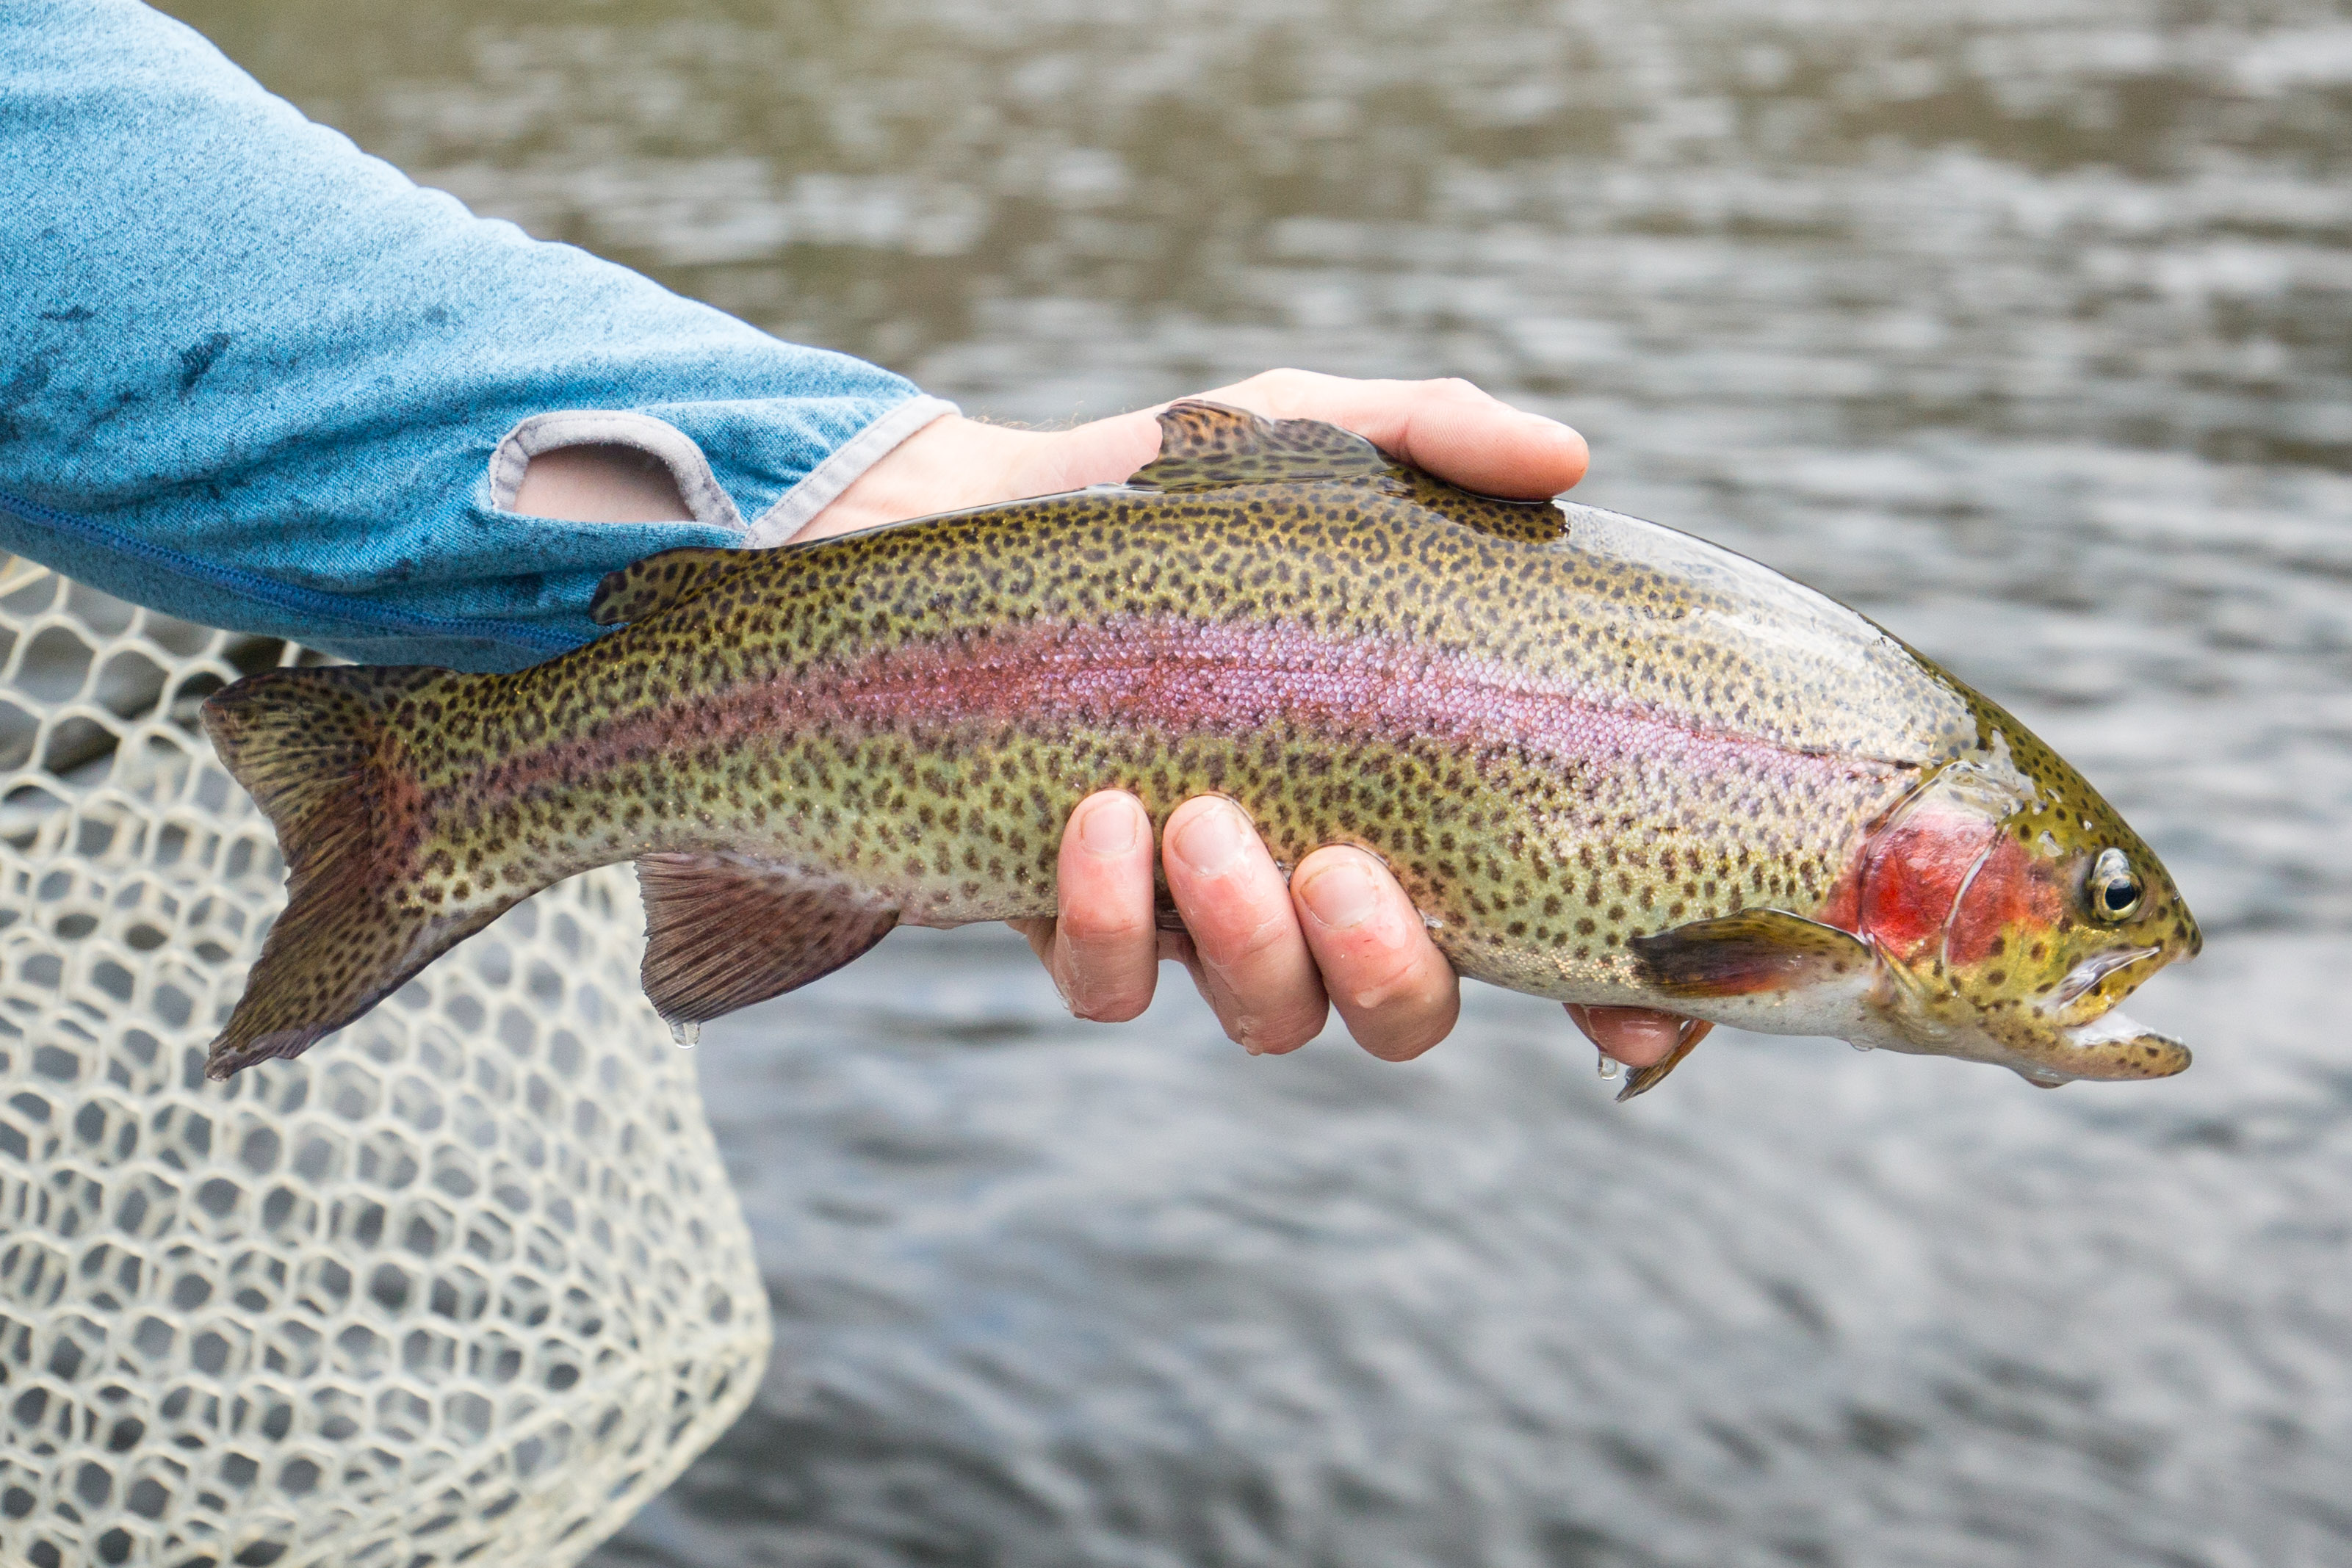 Western fly fishing and bird shooting, close to Boston - The